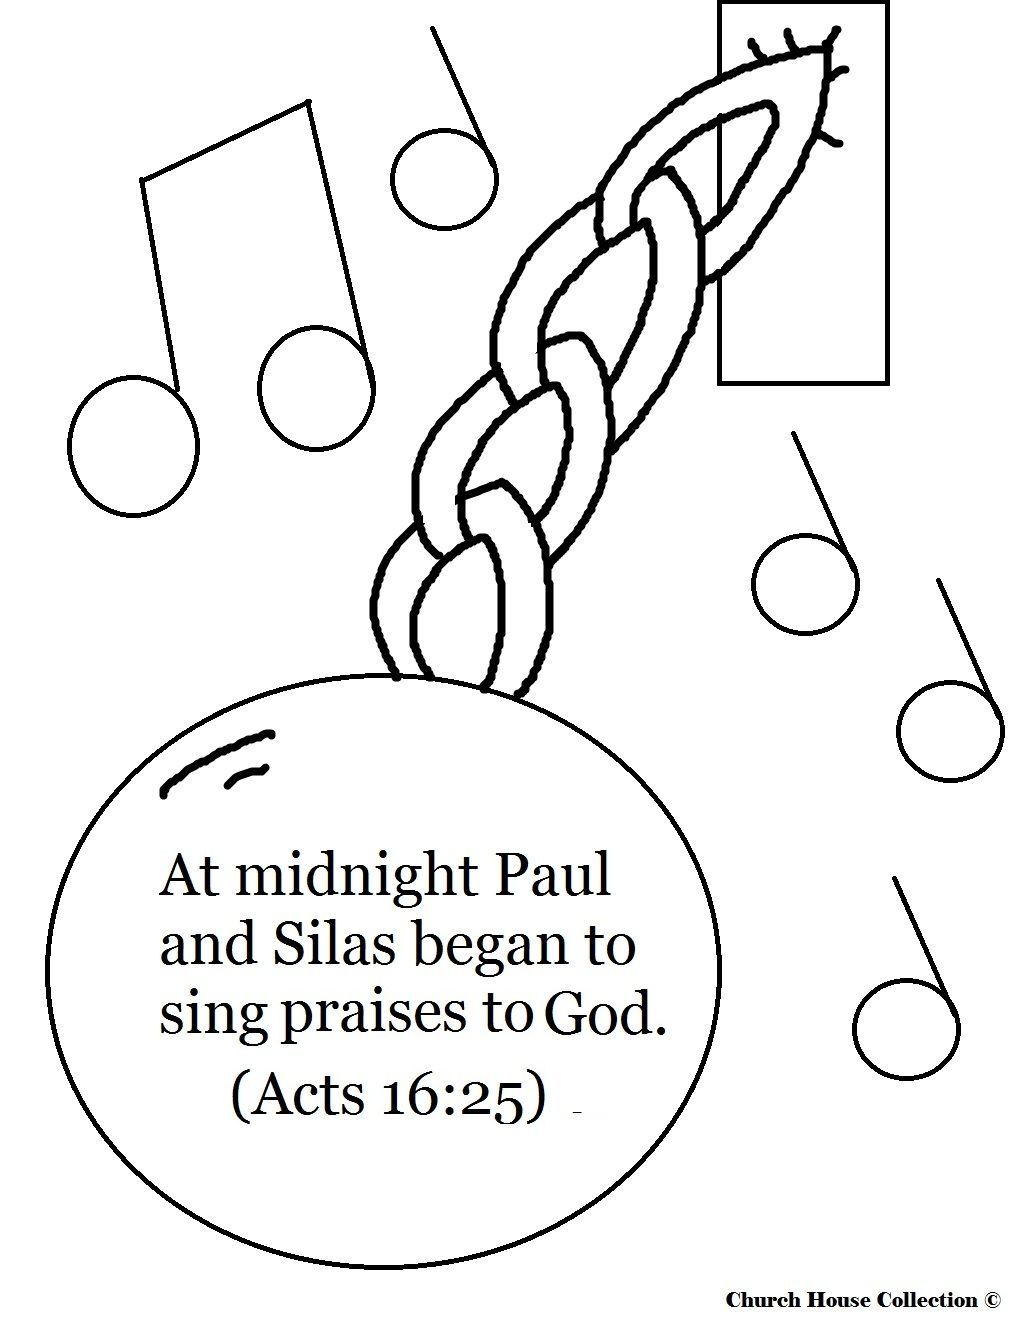 Paul And Silas Coloring Page 12 Jpg 1 019 1 319 Pixels Paul And